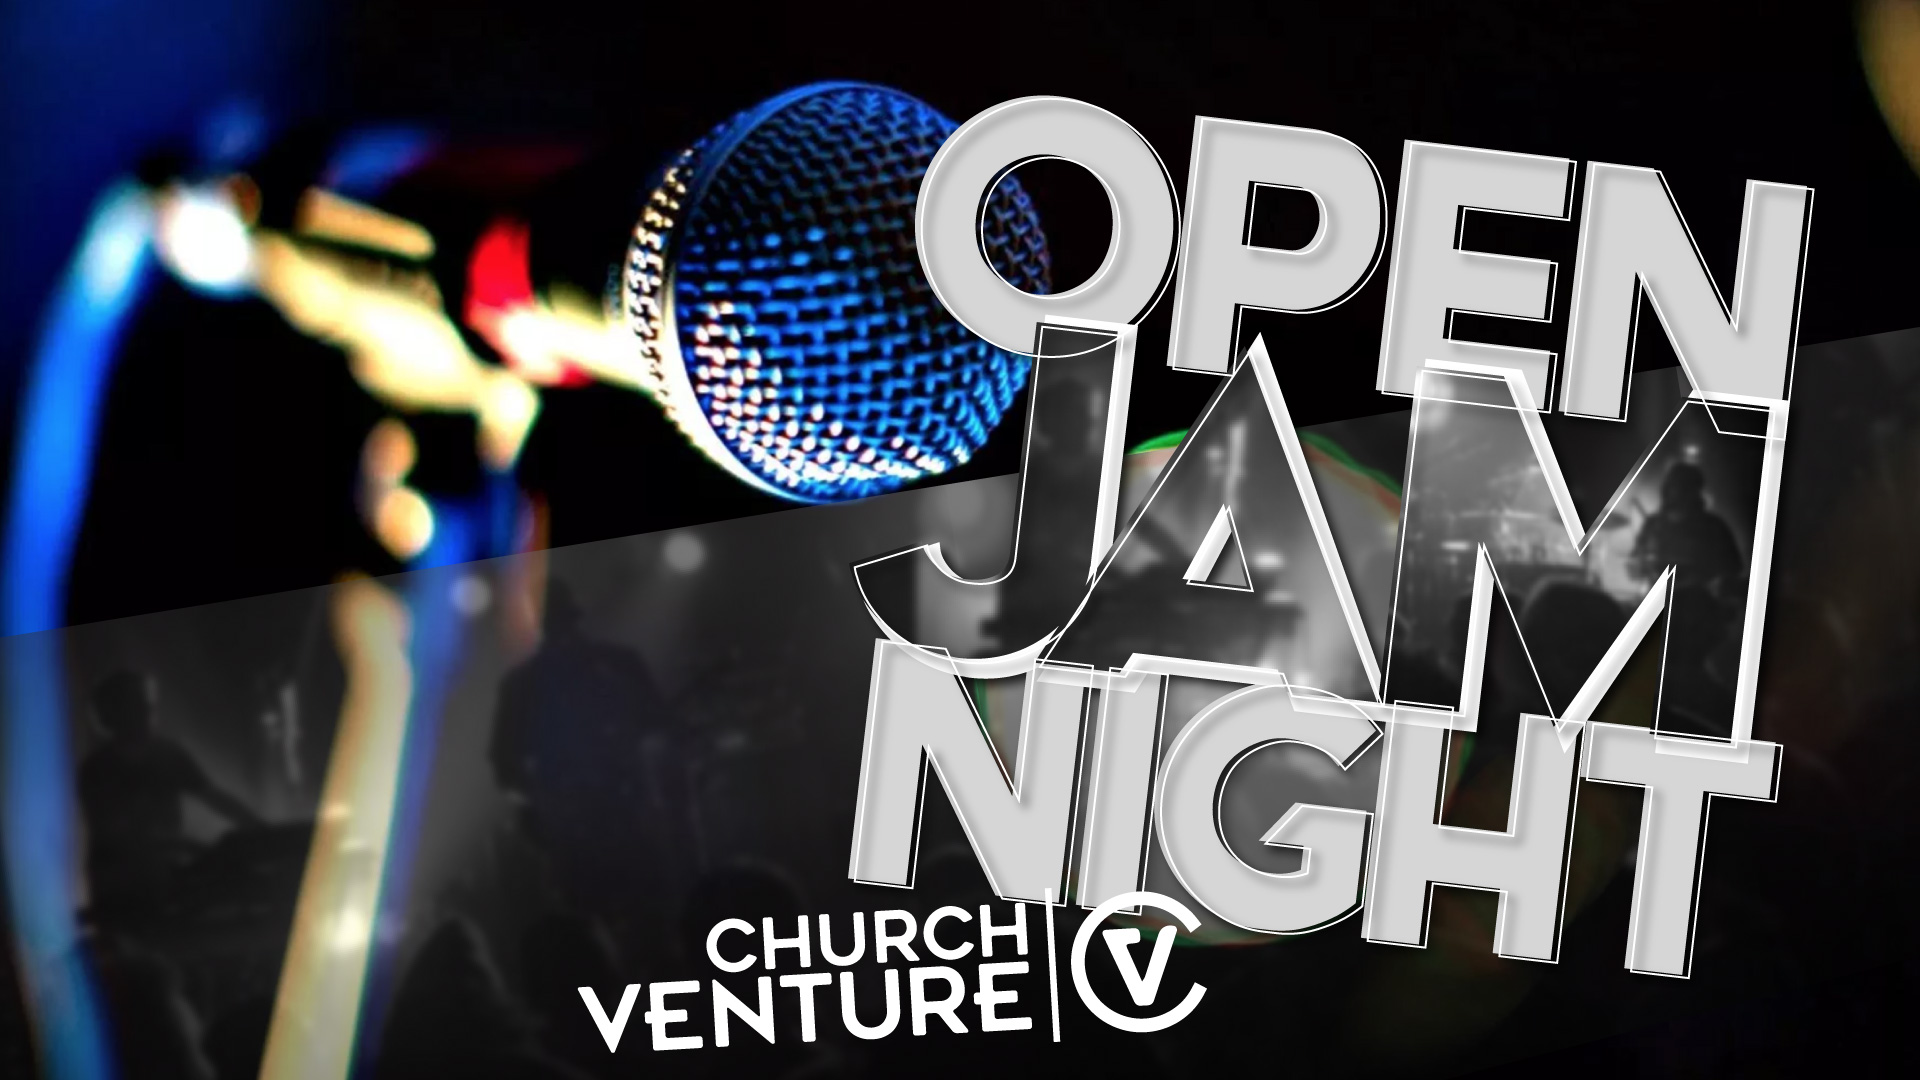 VENTURE BAND - Wednesday, September 11 @ 7:30-9:00pmWe will discuss and do Open Jam Sessions, Music and hanging out!! This is a once-a-month group.